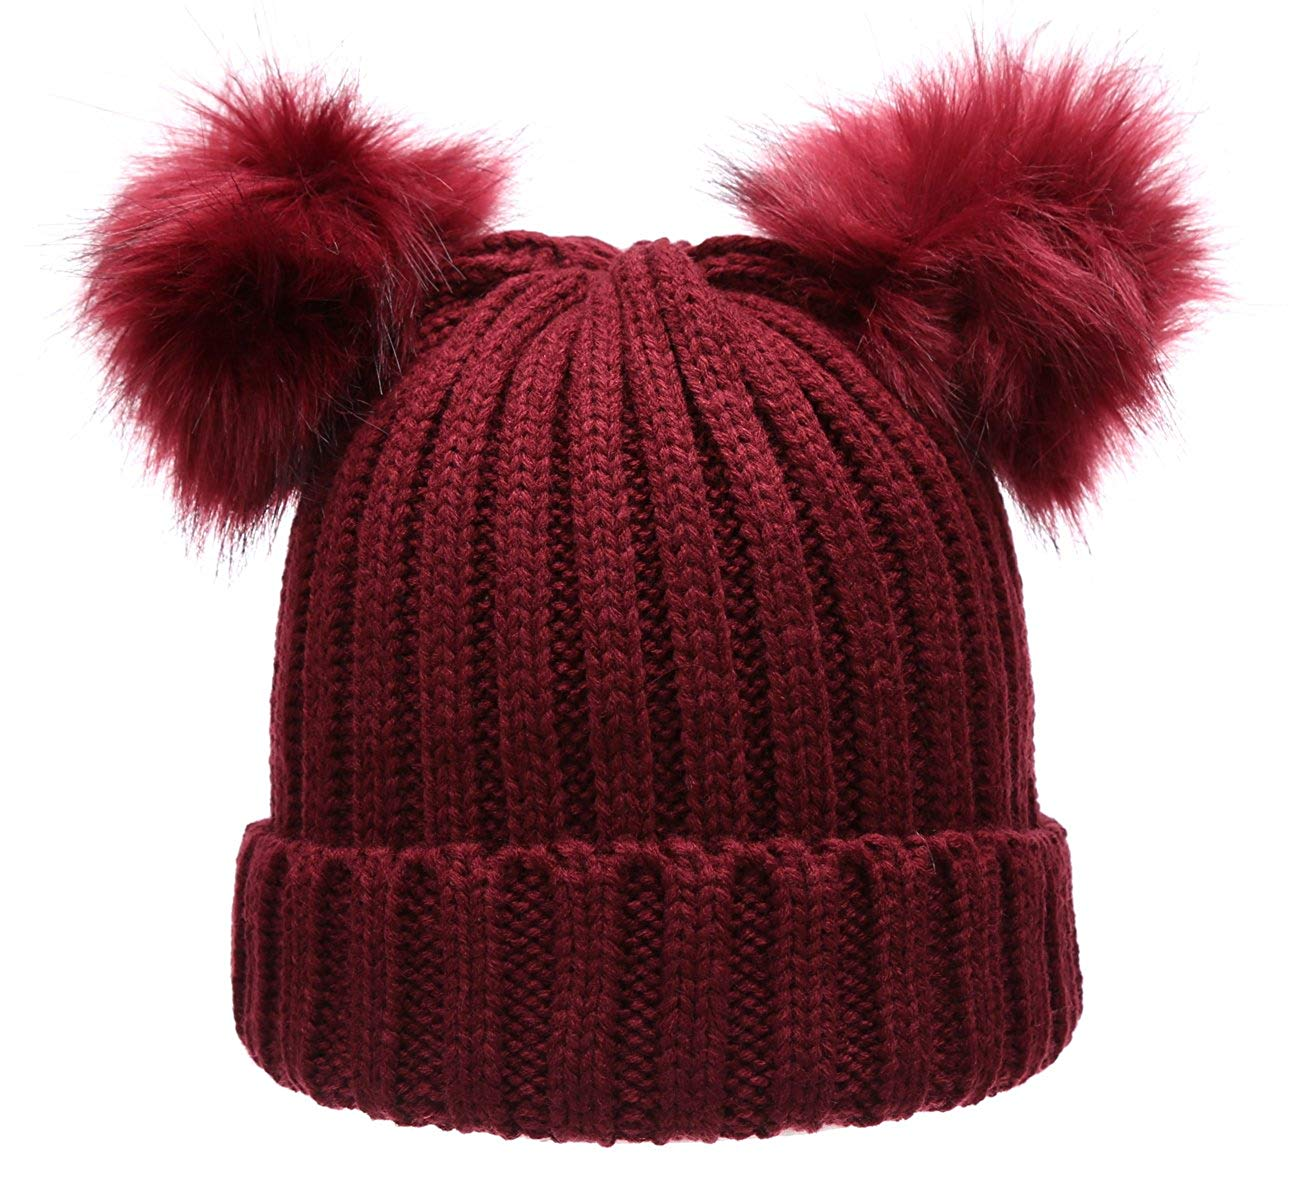 Pom Poms And Winter Hats